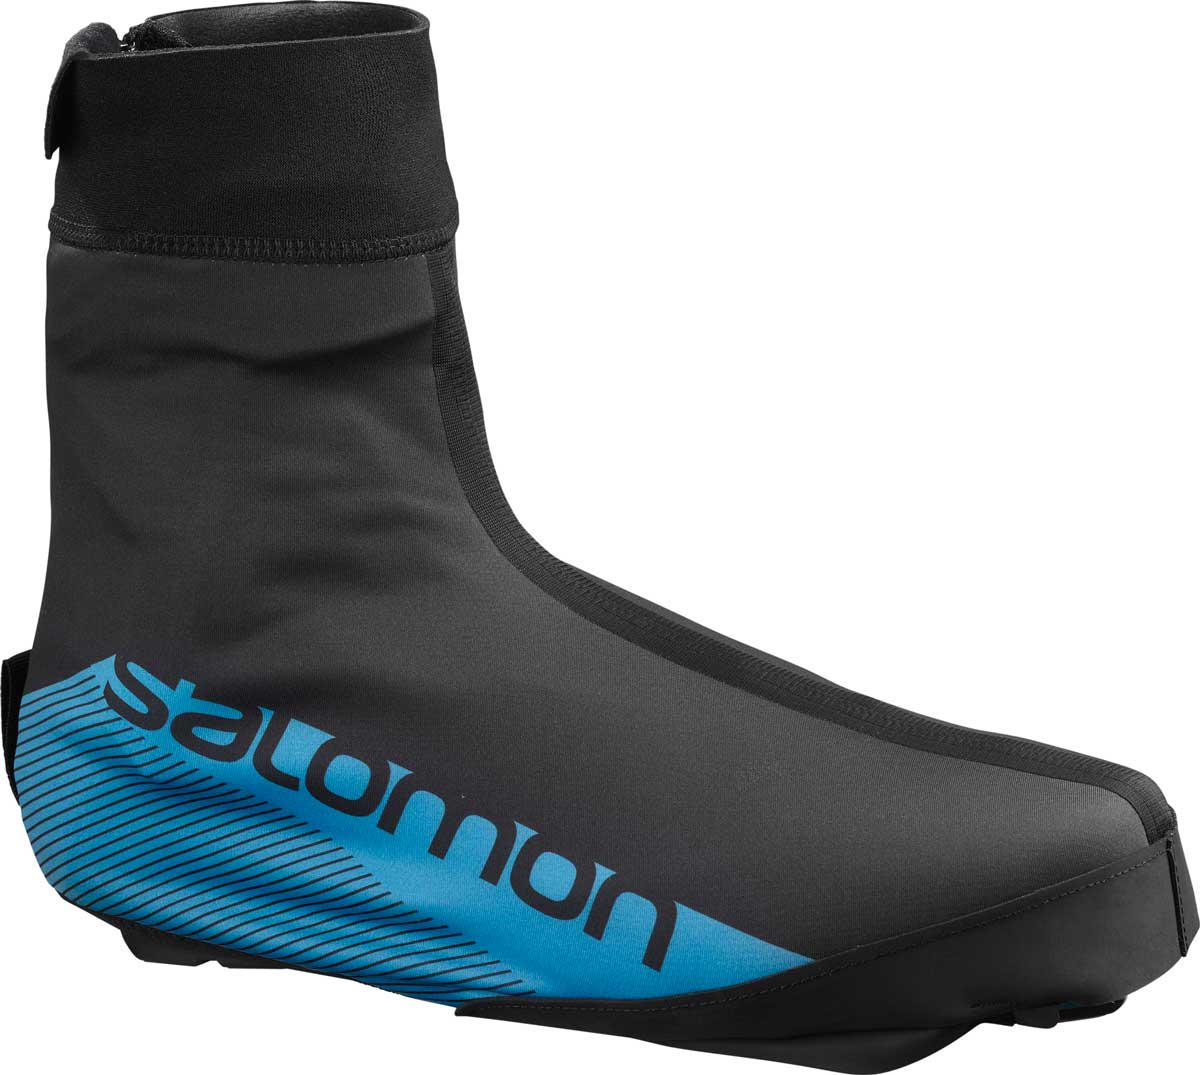 Salomon Overboot Prolink XC Shoes in one color